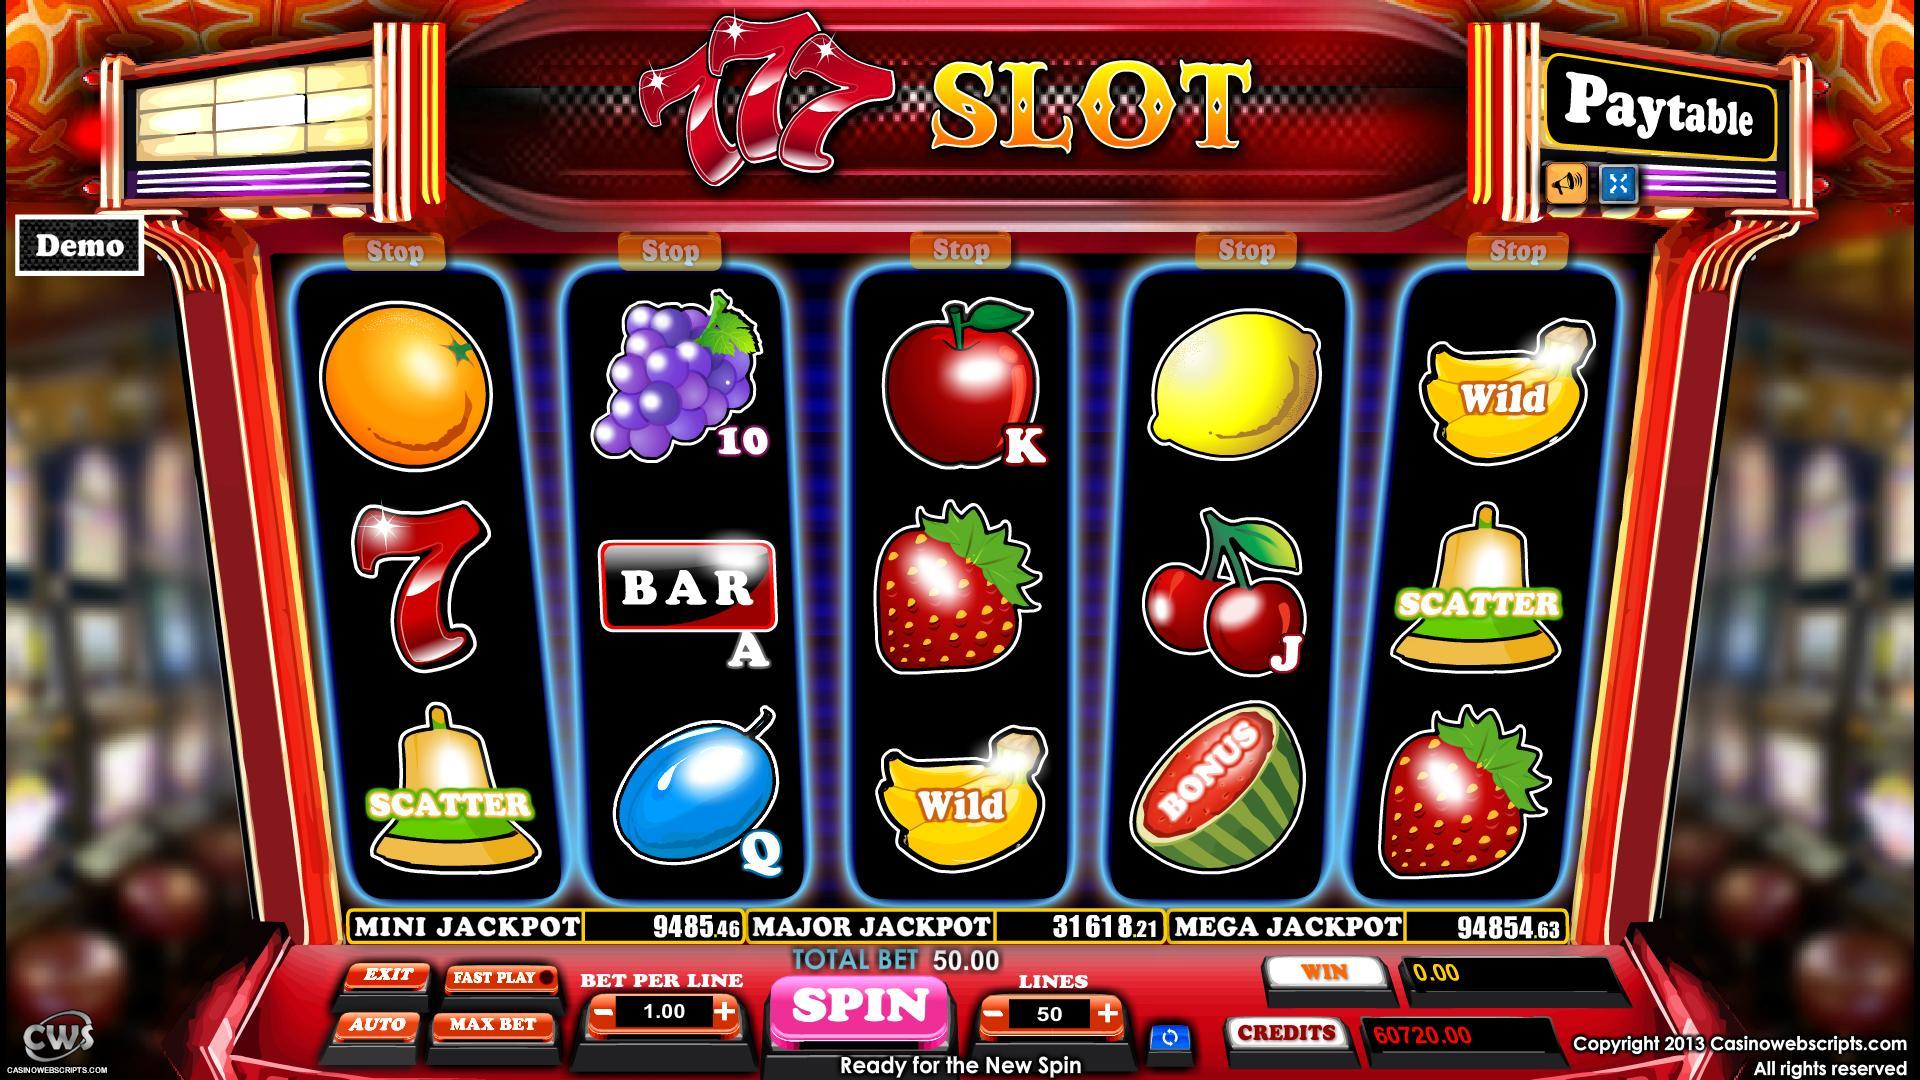 Naval Battle Slot Machine - Play this Video Slot Online